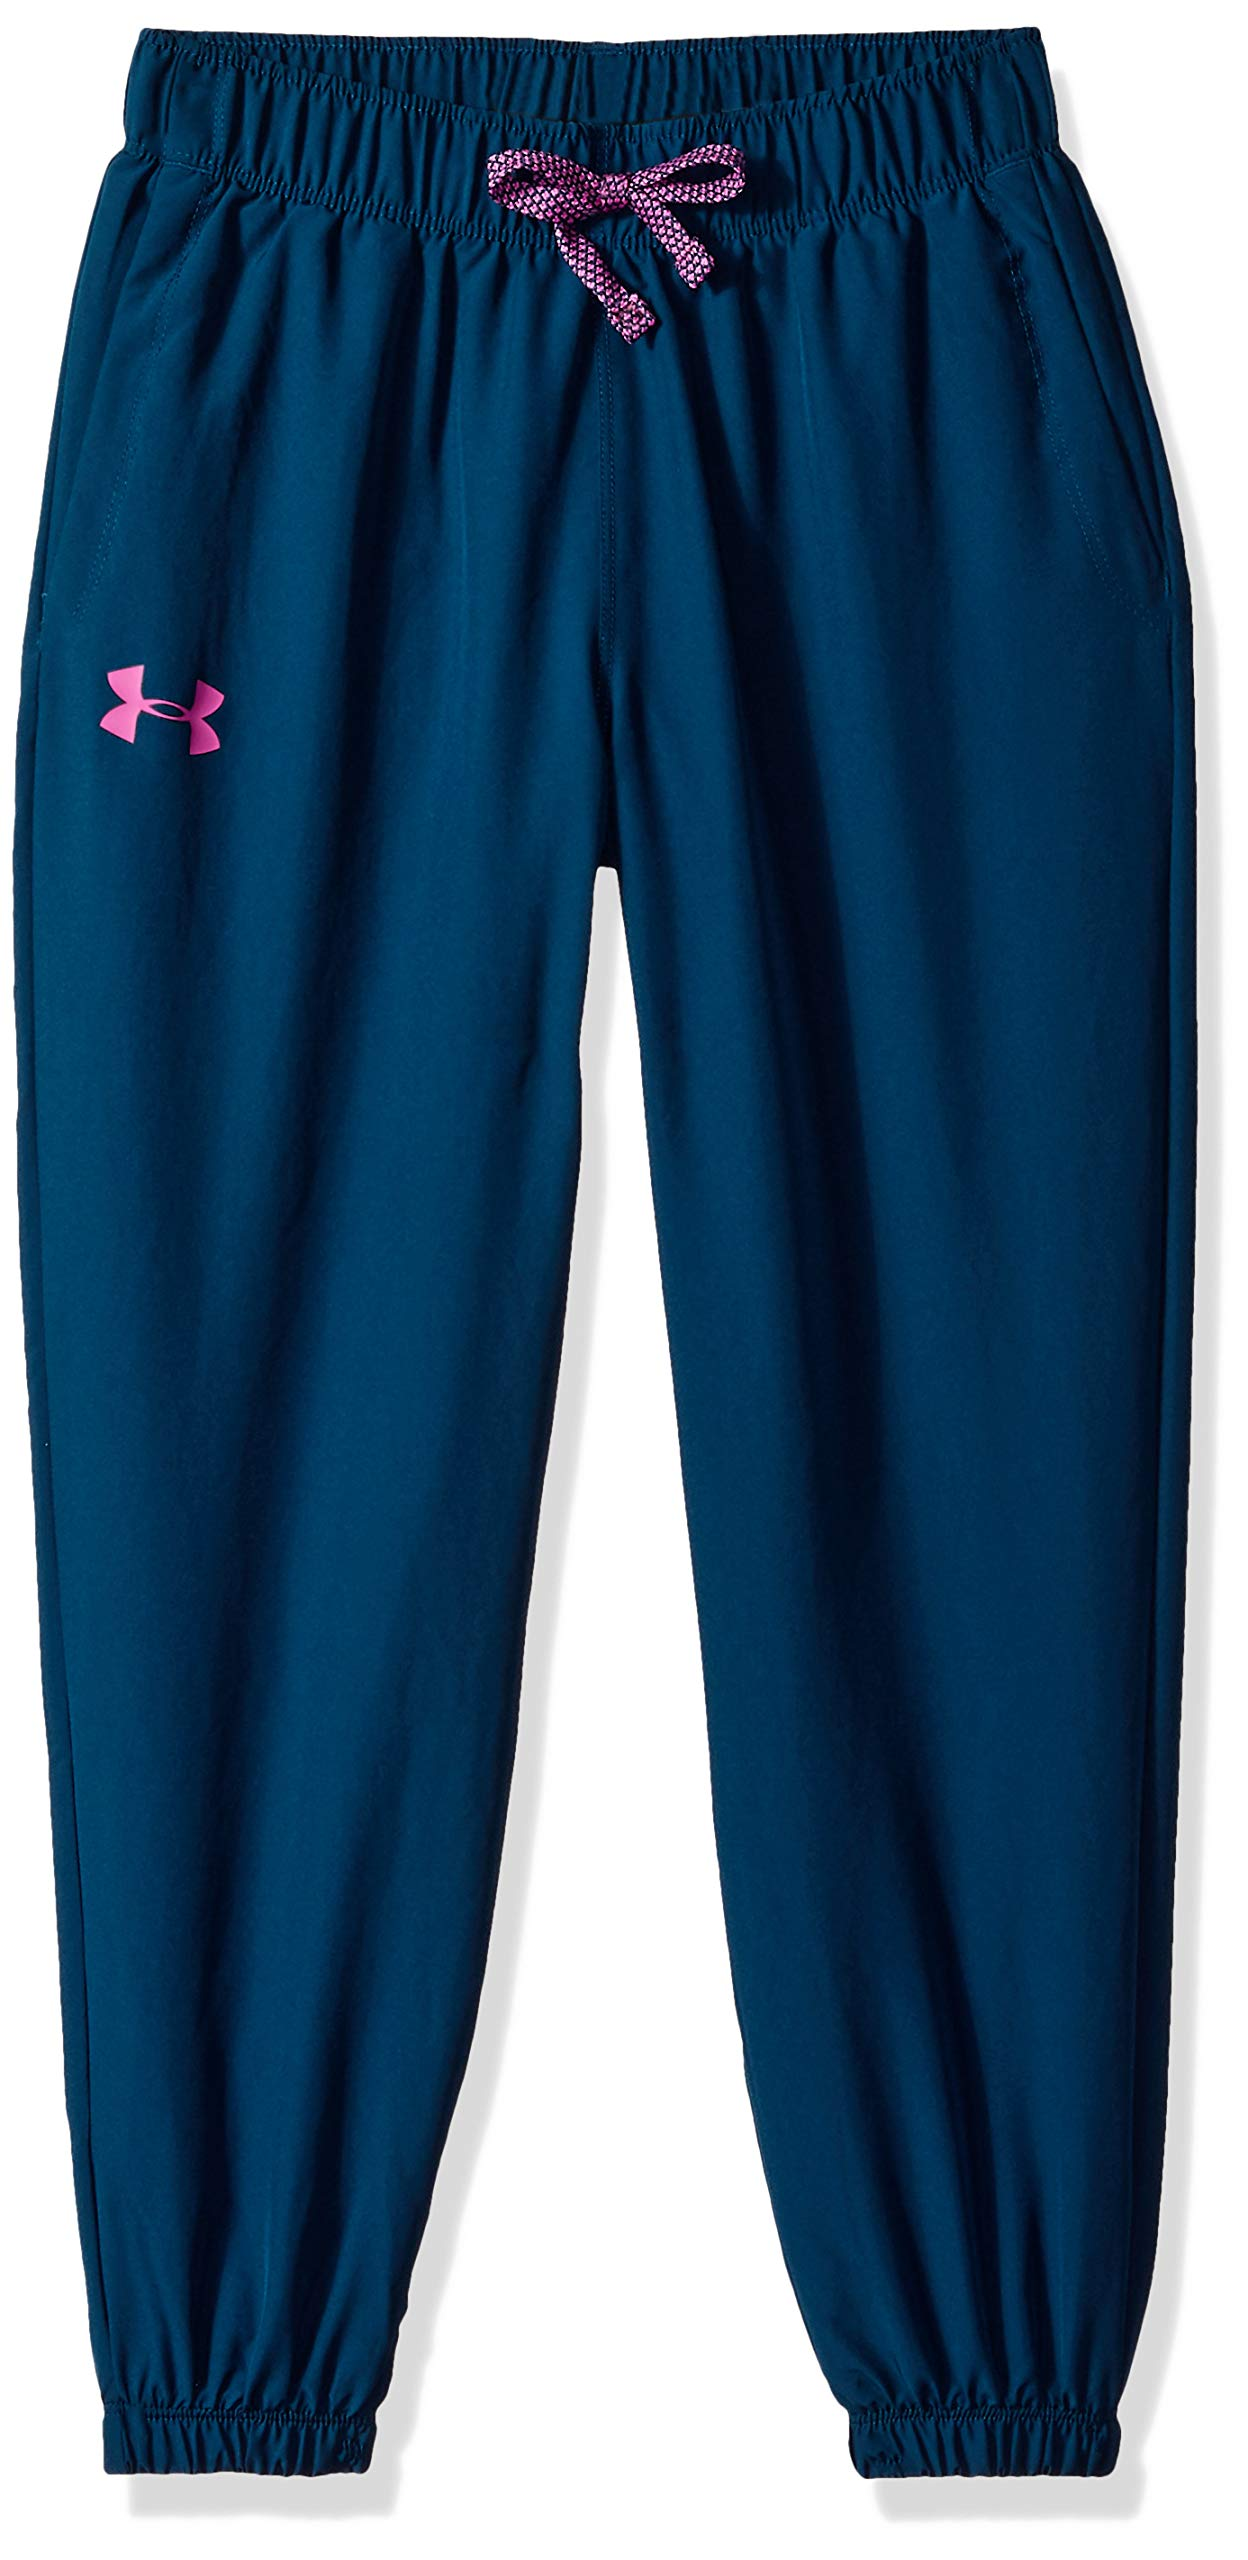 Under Armour Girls Phenom Pants, Techno Teal (489)/Fluo Fuchsia, Youth X-Small by Under Armour